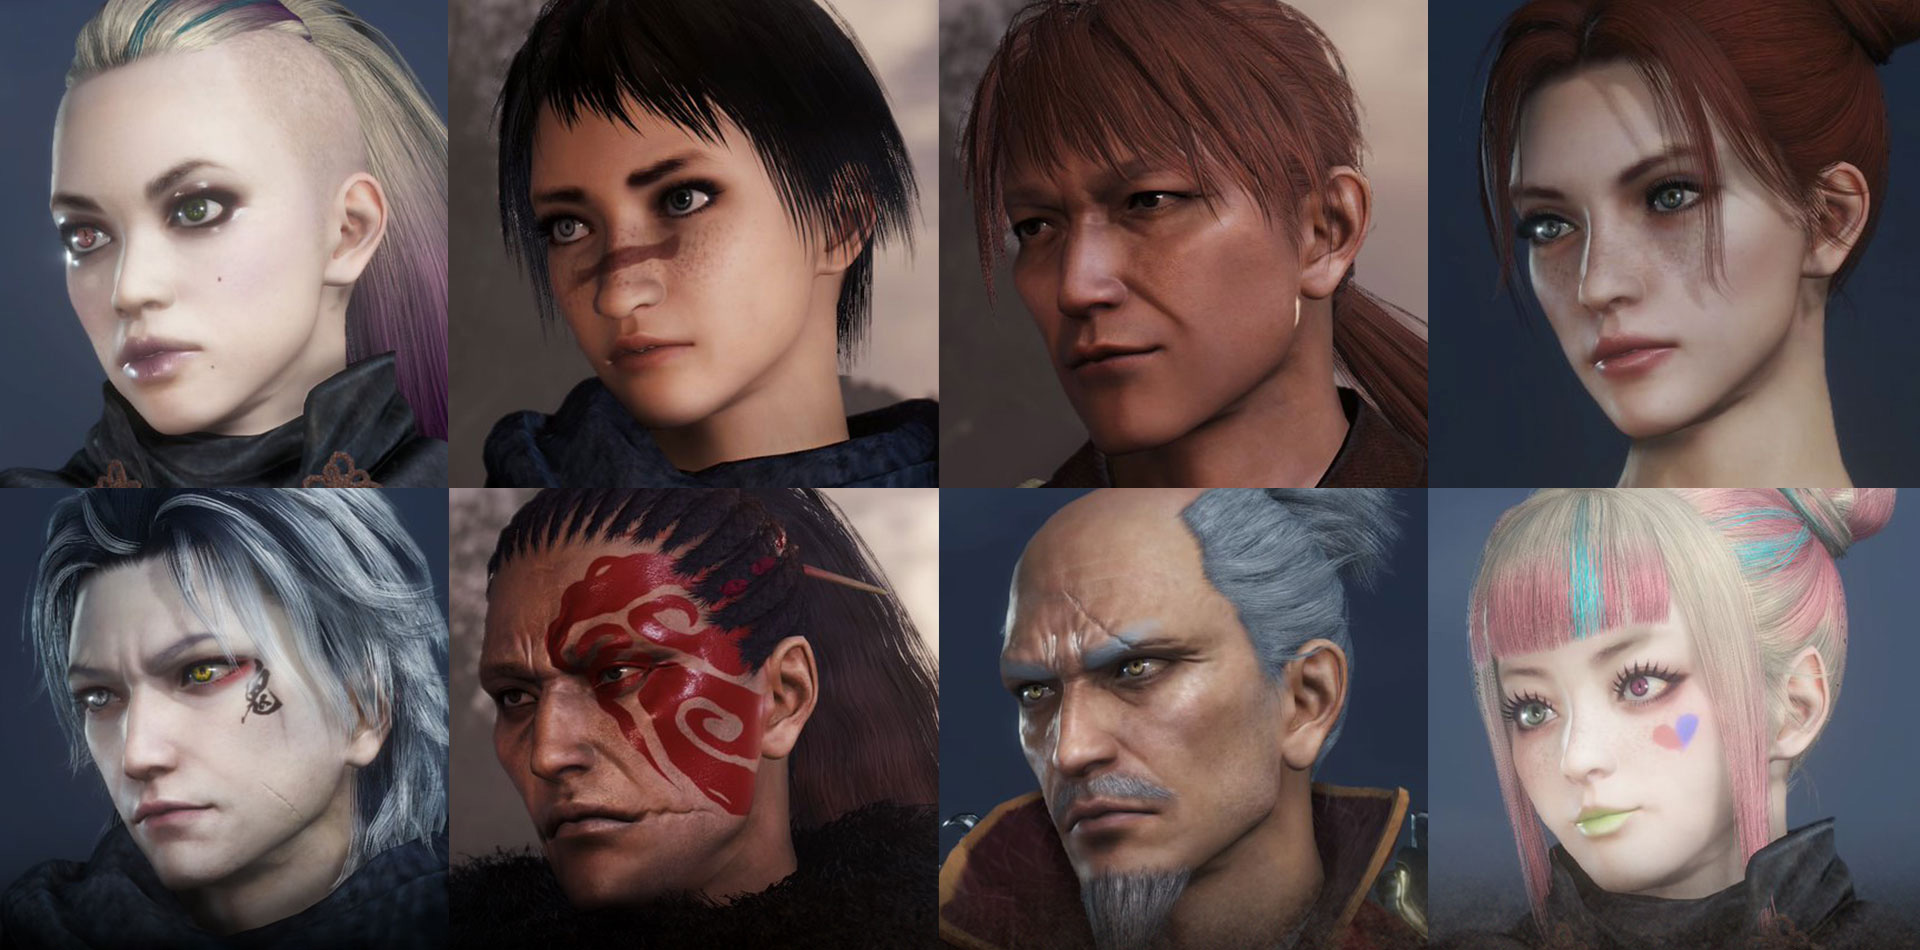 These are the Nioh 2 character contest winners